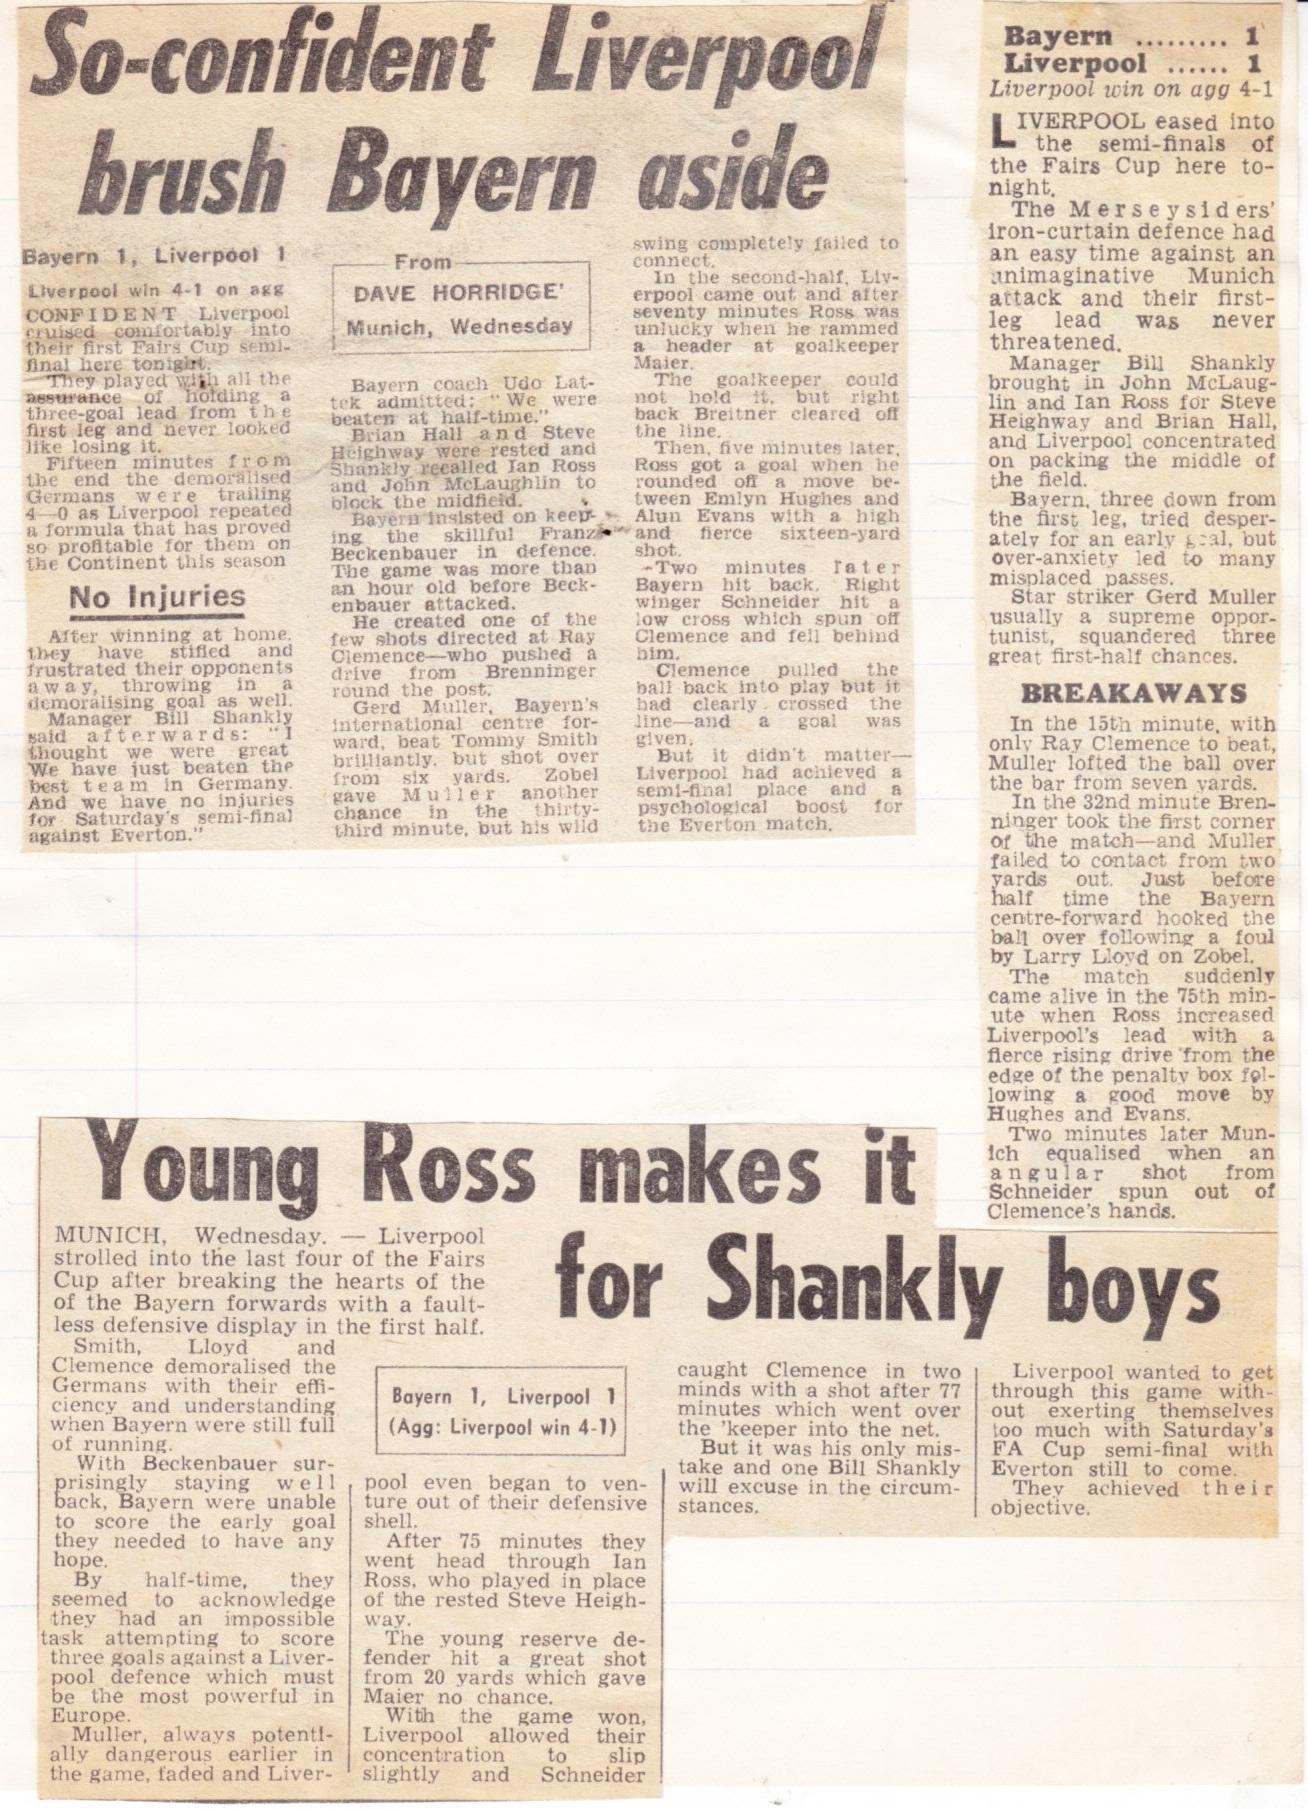 Young Ross makes it for Shankly boys - 24 March 1971